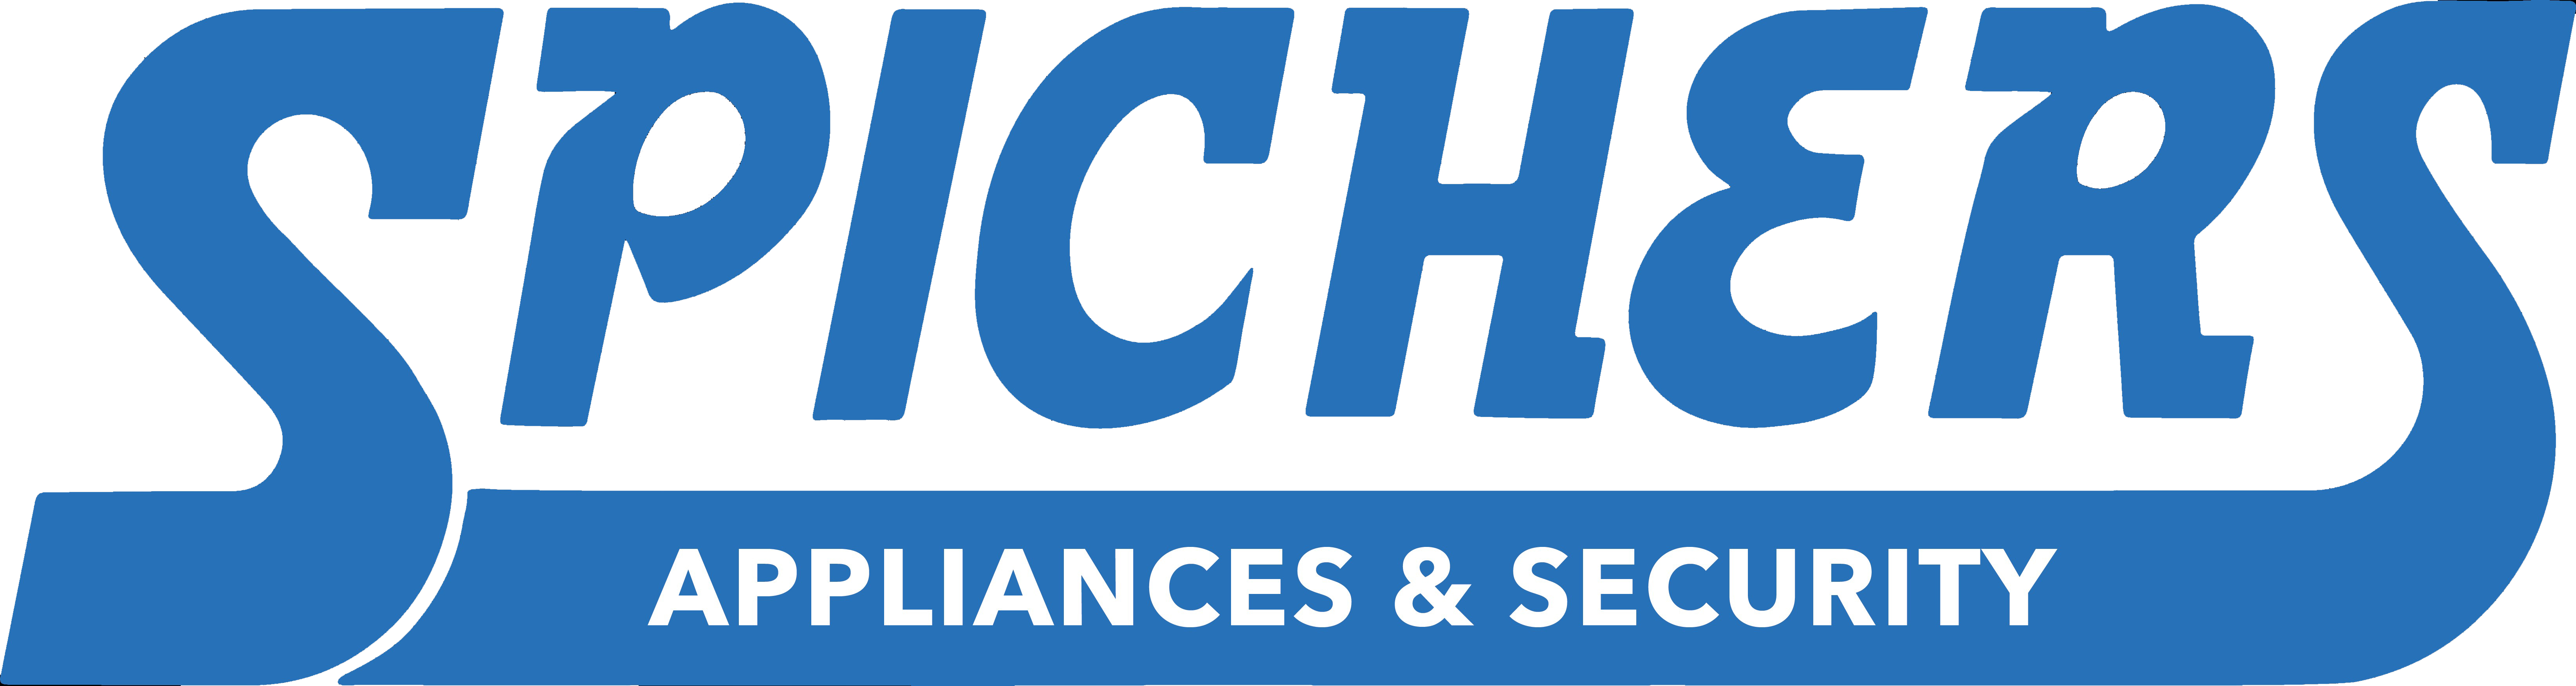 Spichers Appliances and Security